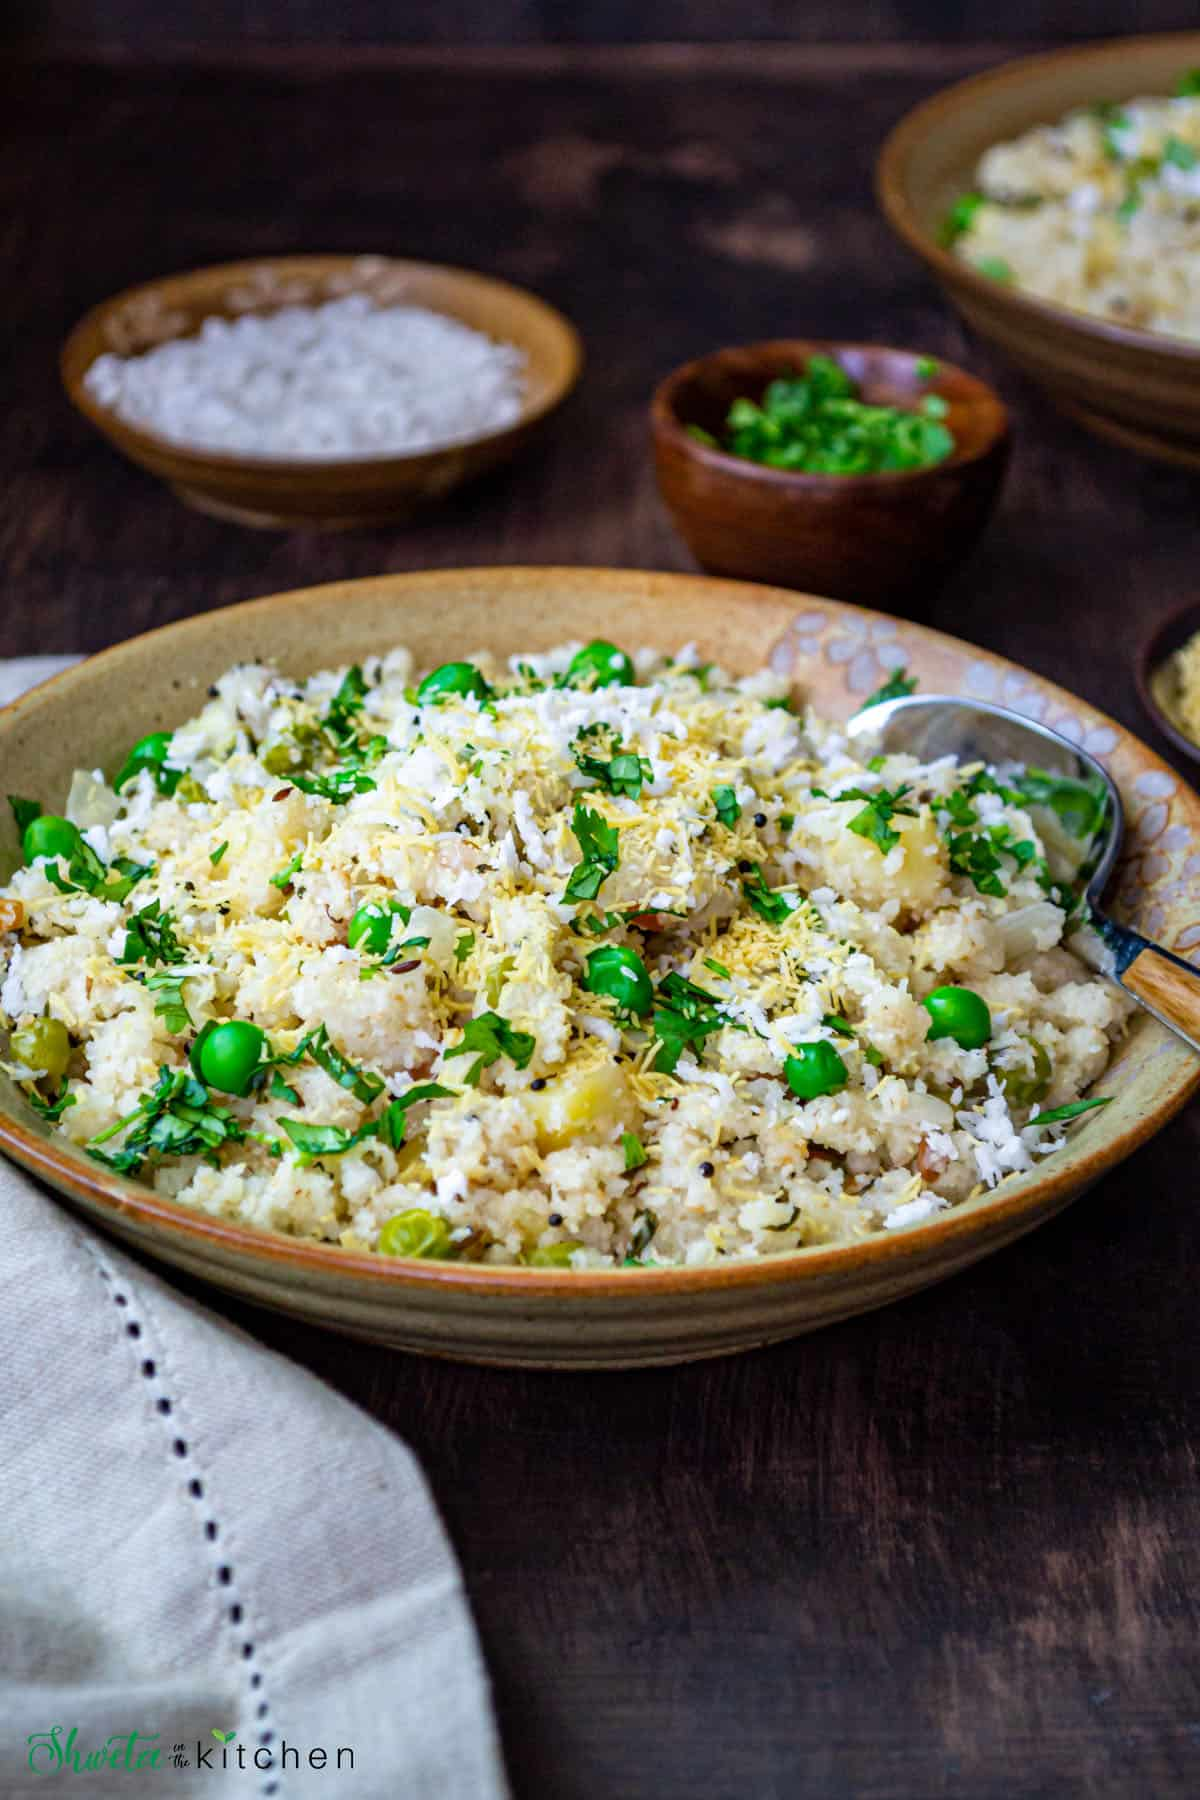 Rava upma served in a bowl with a spoon and garnished with fresh cilantro